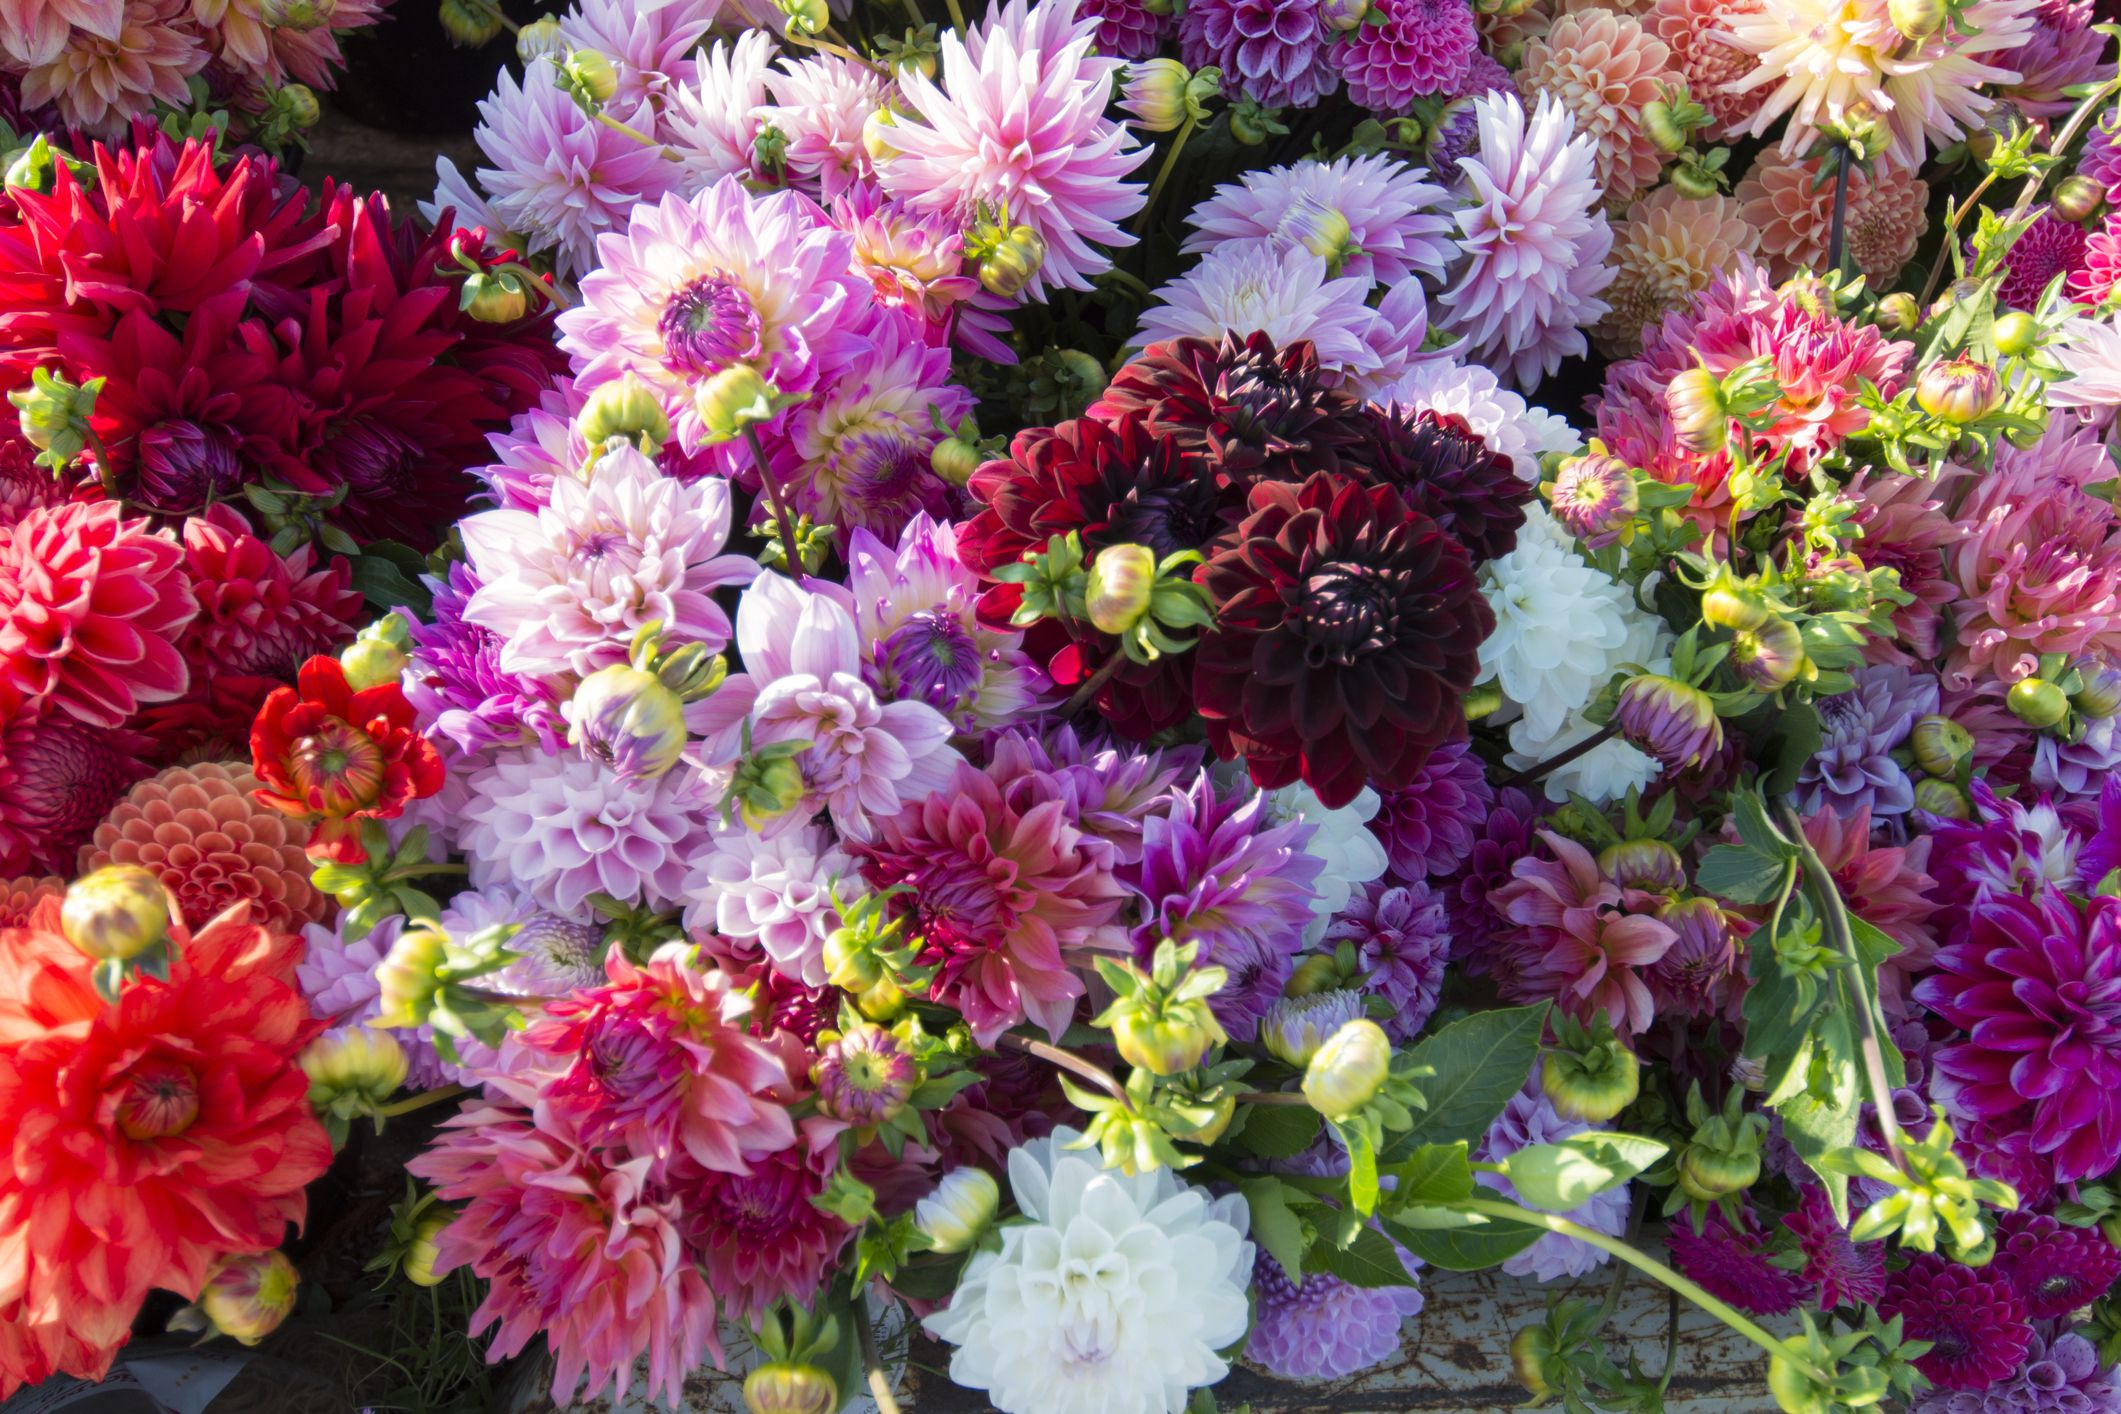 Growing Dahlias From Pompons To Dinner Plates